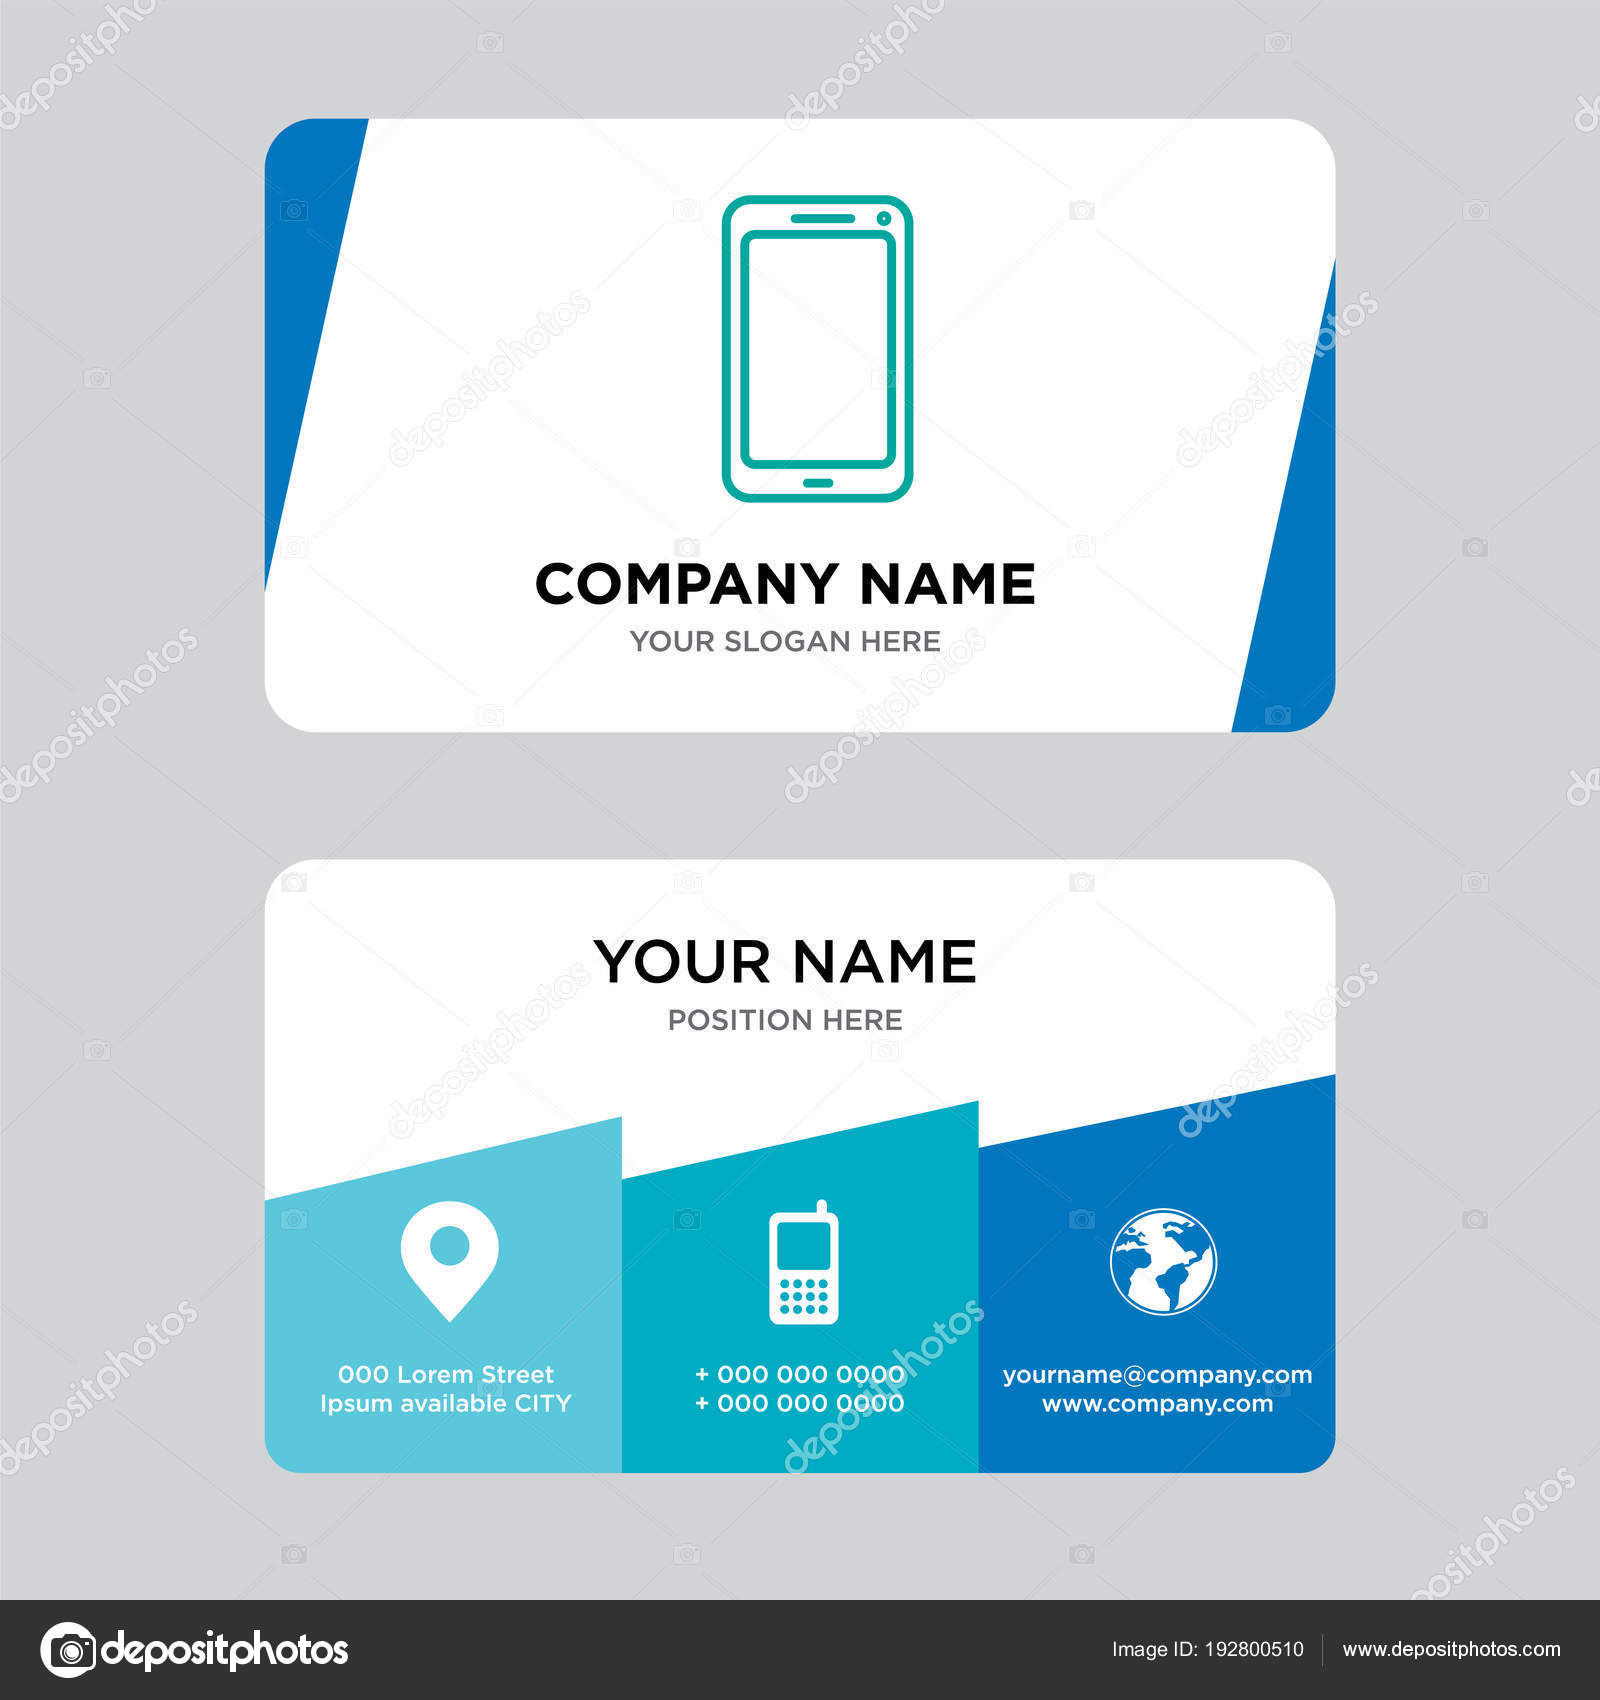 Smartphone Business Card Design Template Stock Vector